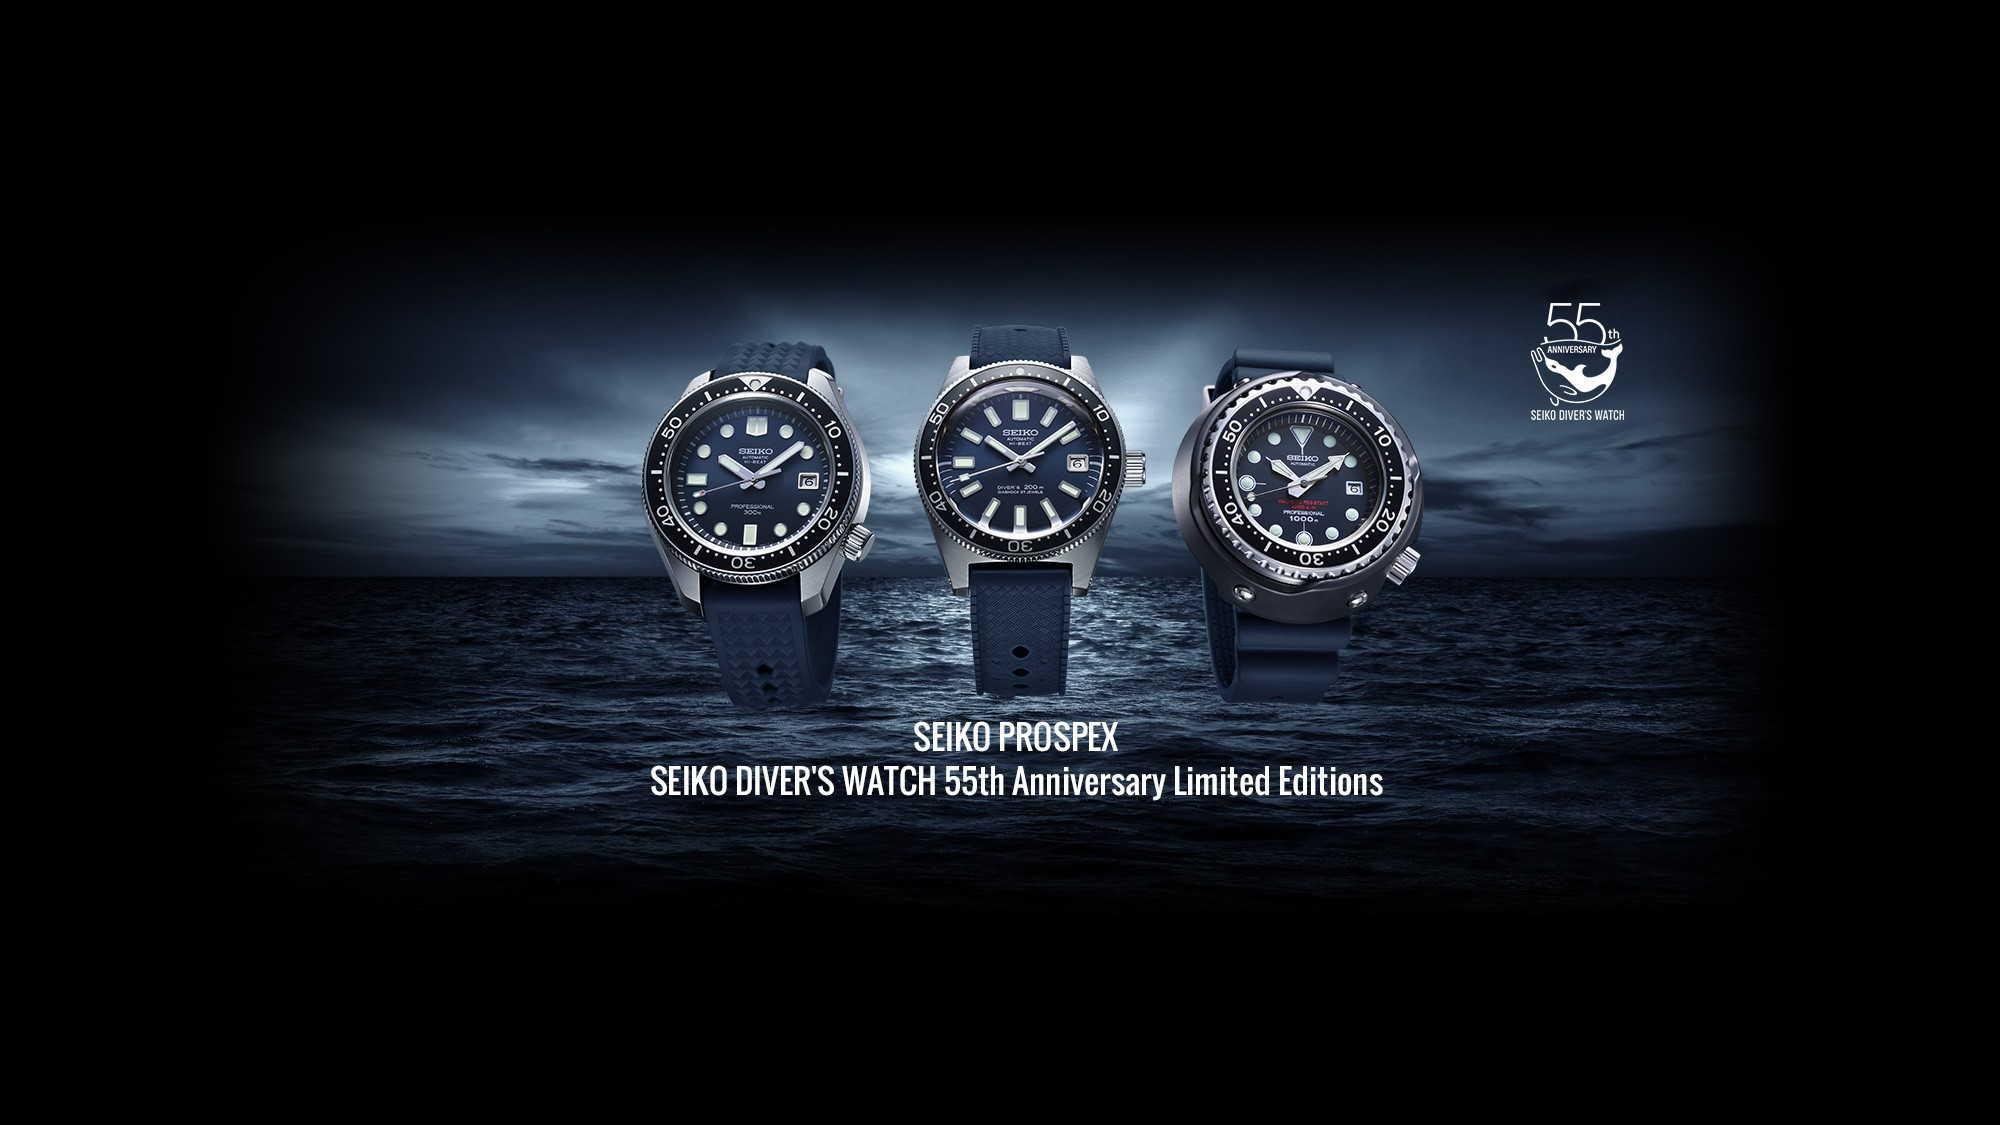 SEIKO PROSPEX SEIKO DIVER'S WATCH 55th Anniversary Limited Editions